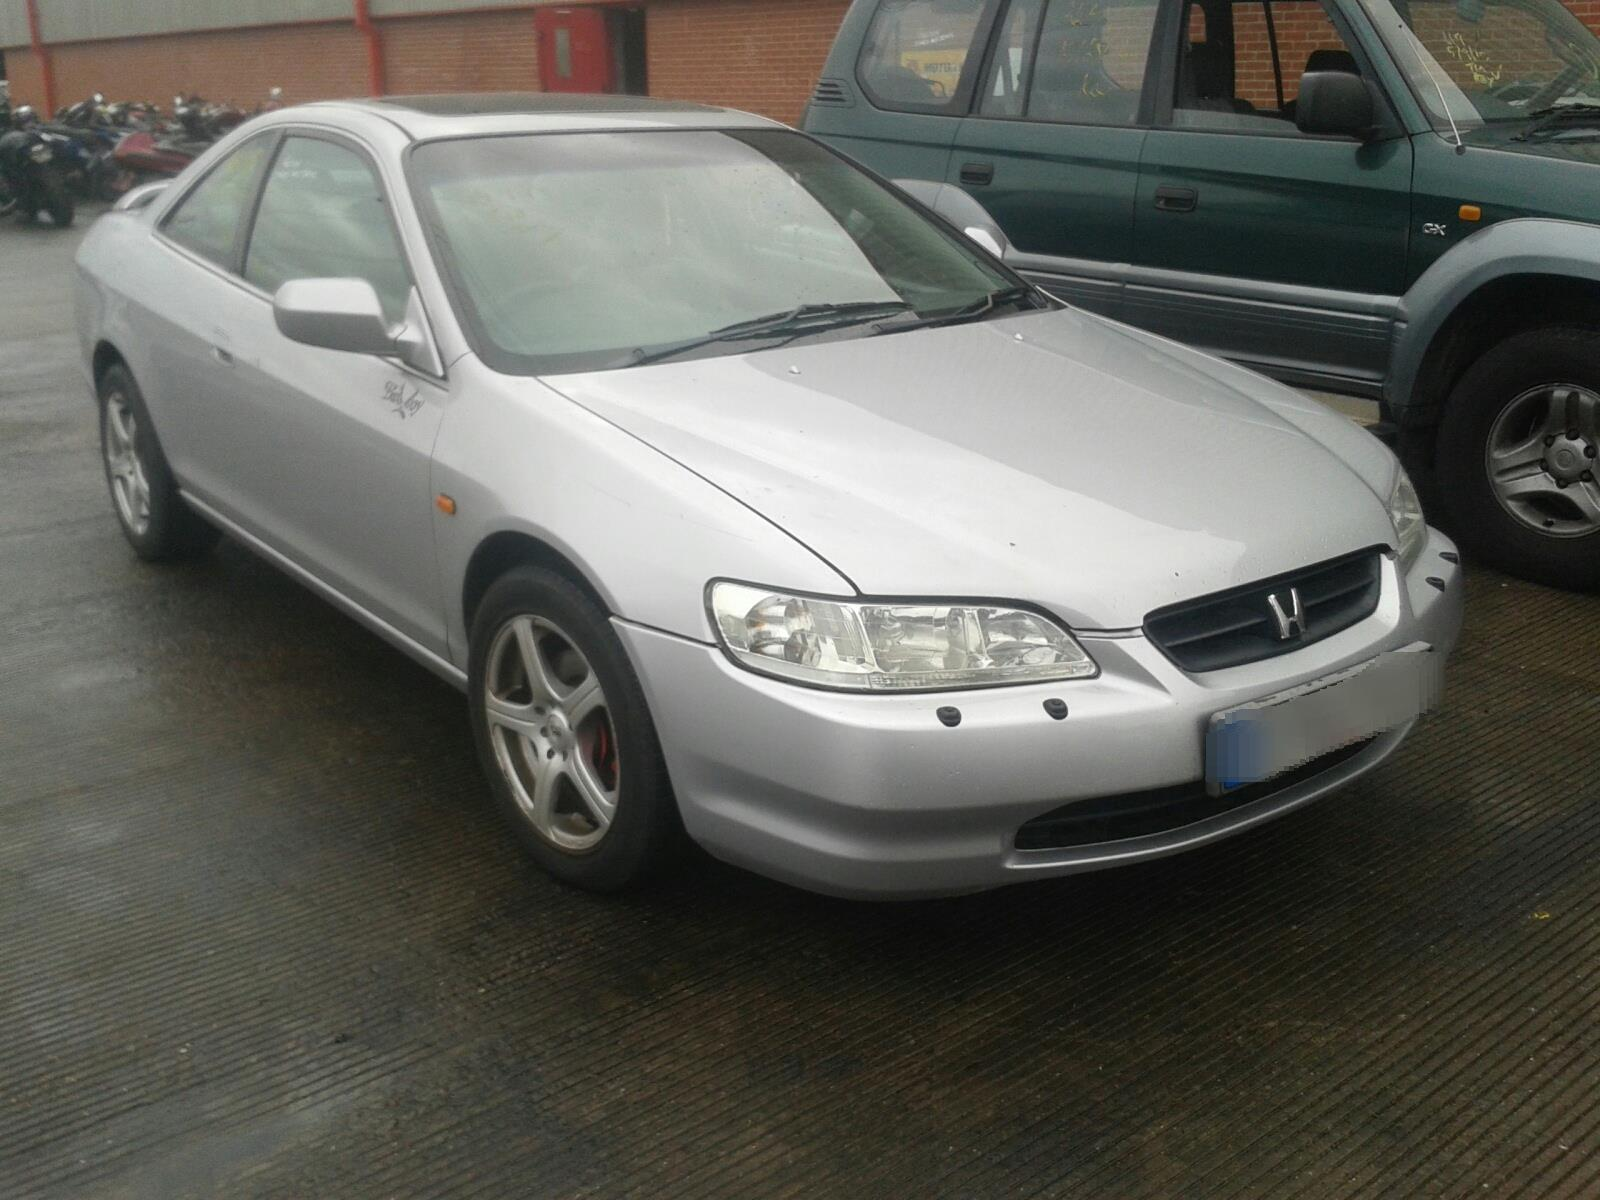 Synetiq 1999 Honda Accord Mk6 Cg4 1998 To 2002 Es 2 Door Coupe Petrol Manual Breaking For Used And Spare Parts